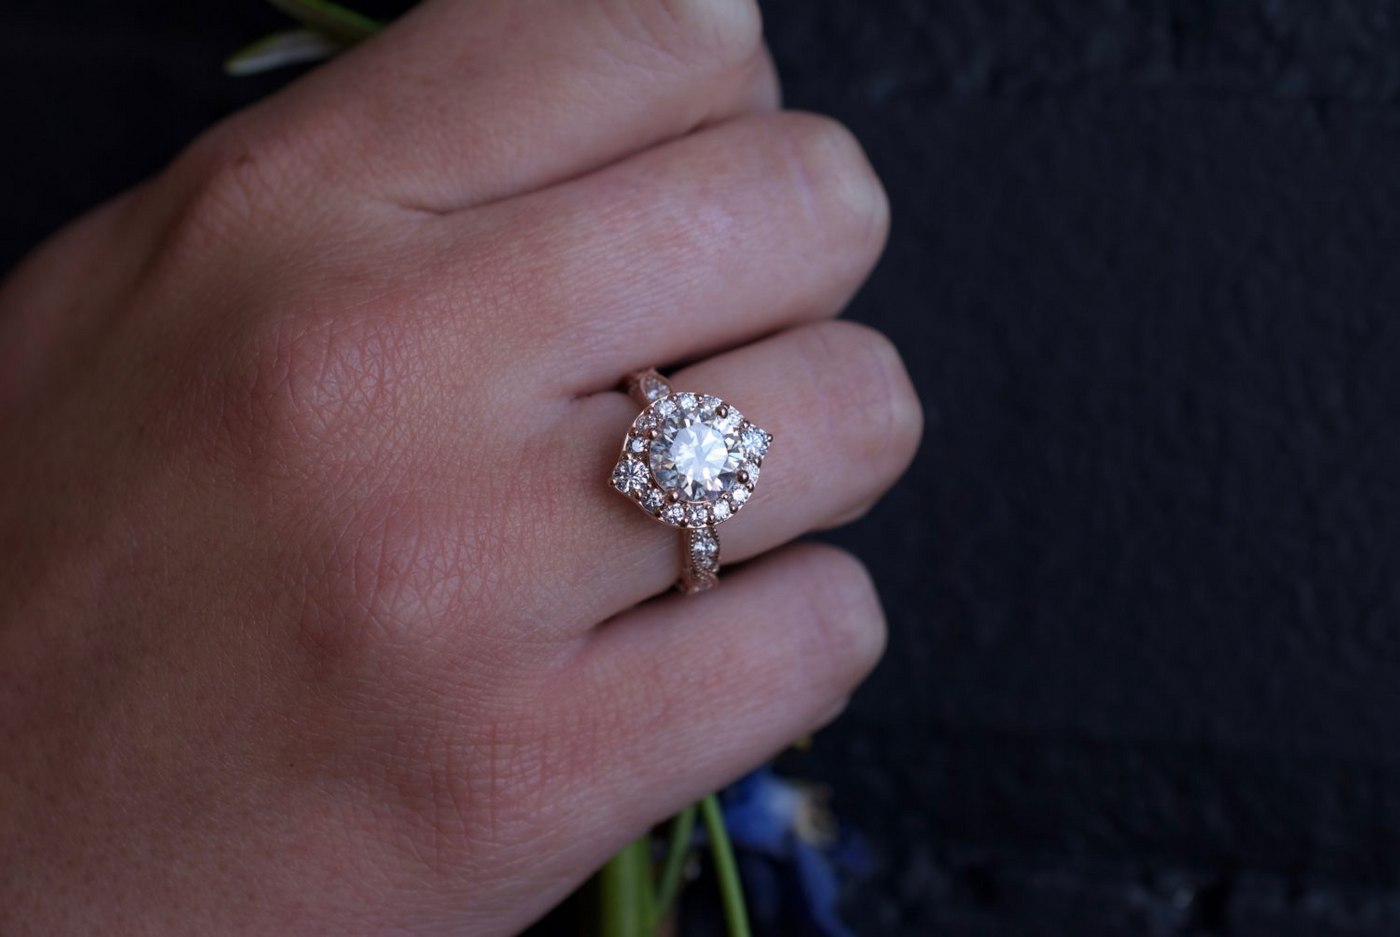 Is Moissanite a Good Choice?